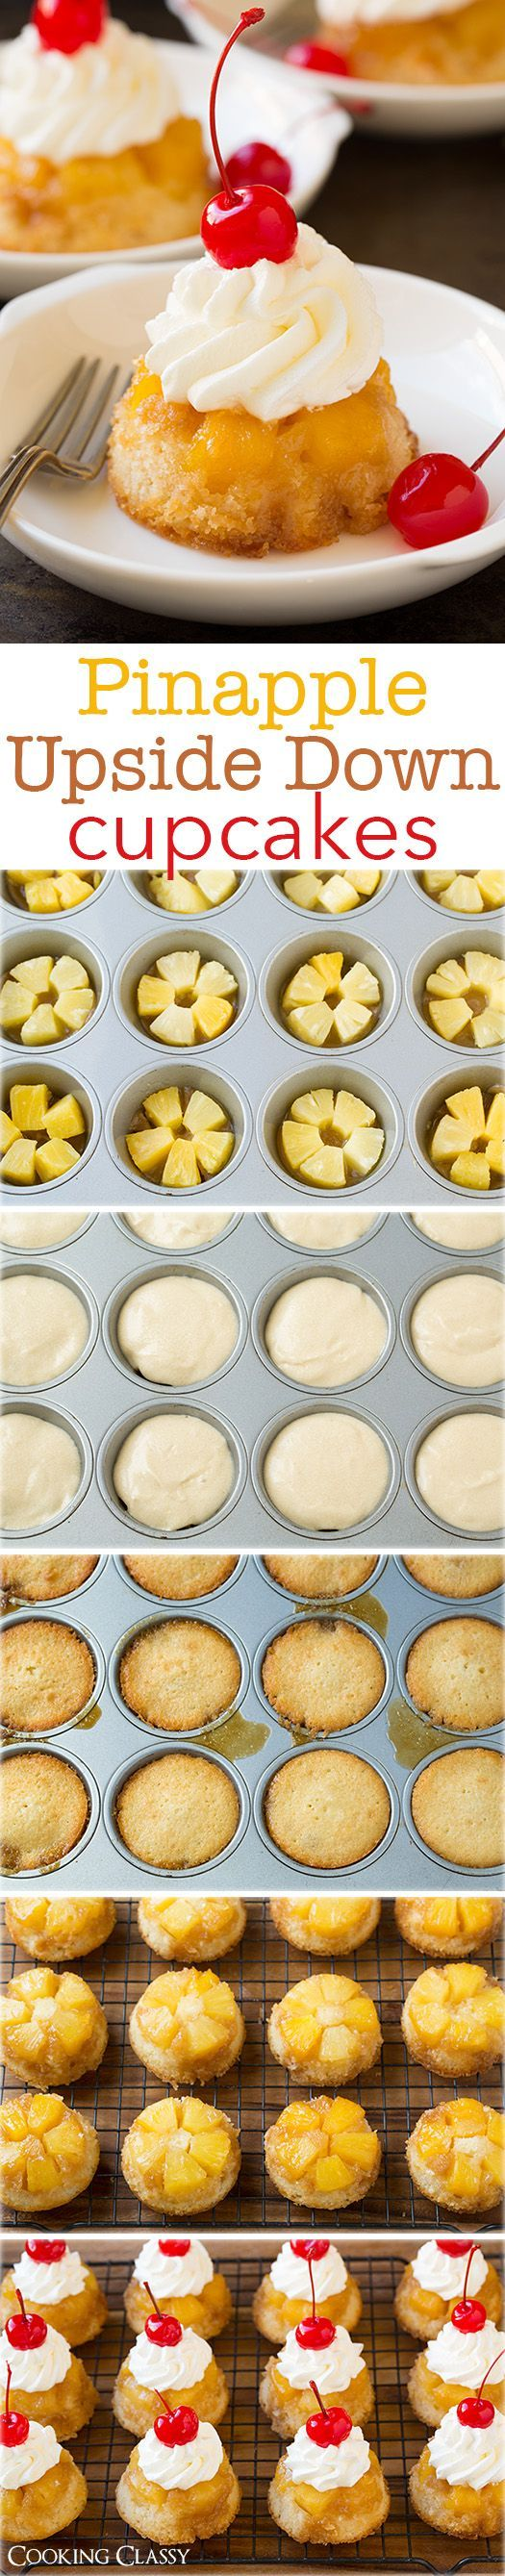 Pineapple Upside Down Cupcakes - just like that classic cake your grandma made but in cupcake form! Loved them so much I'm making them again tomorrow!